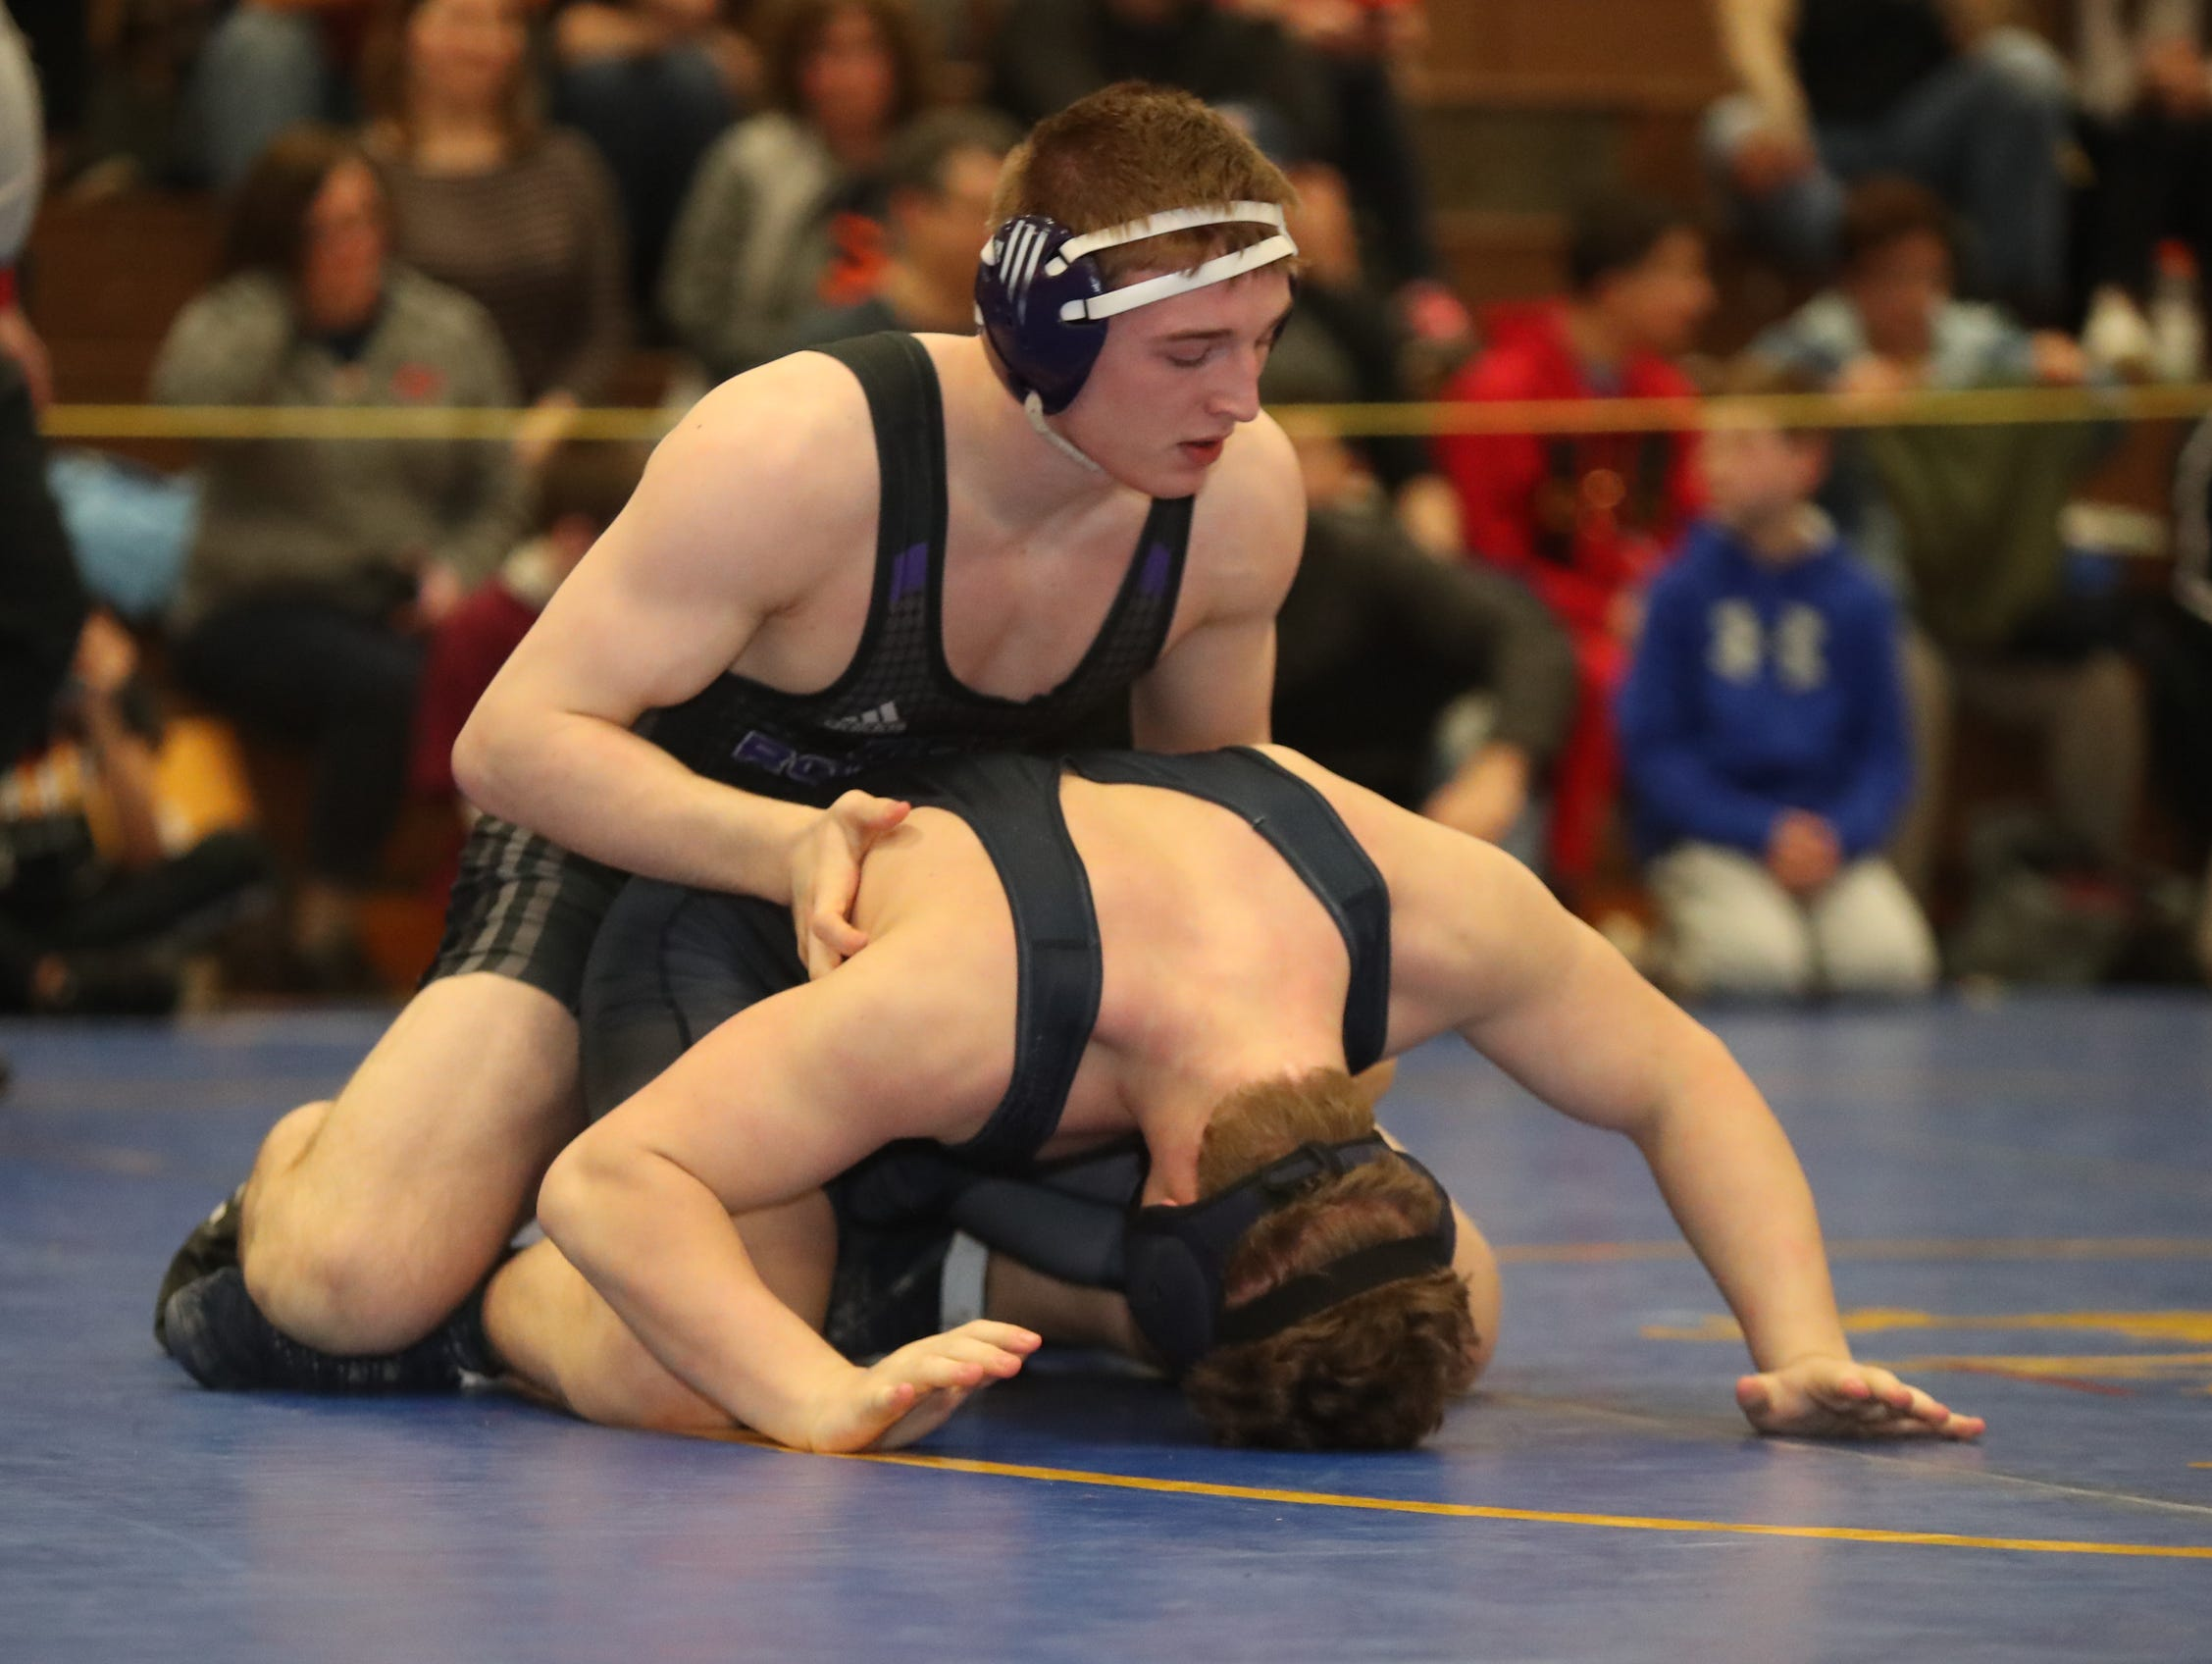 New Rochelle's Jake Logan defeats Byram Hills Alex Behar in the 182-pound match of the division I wrestling finals at Clarkstown South High School on Sunday, February 10, 2019.